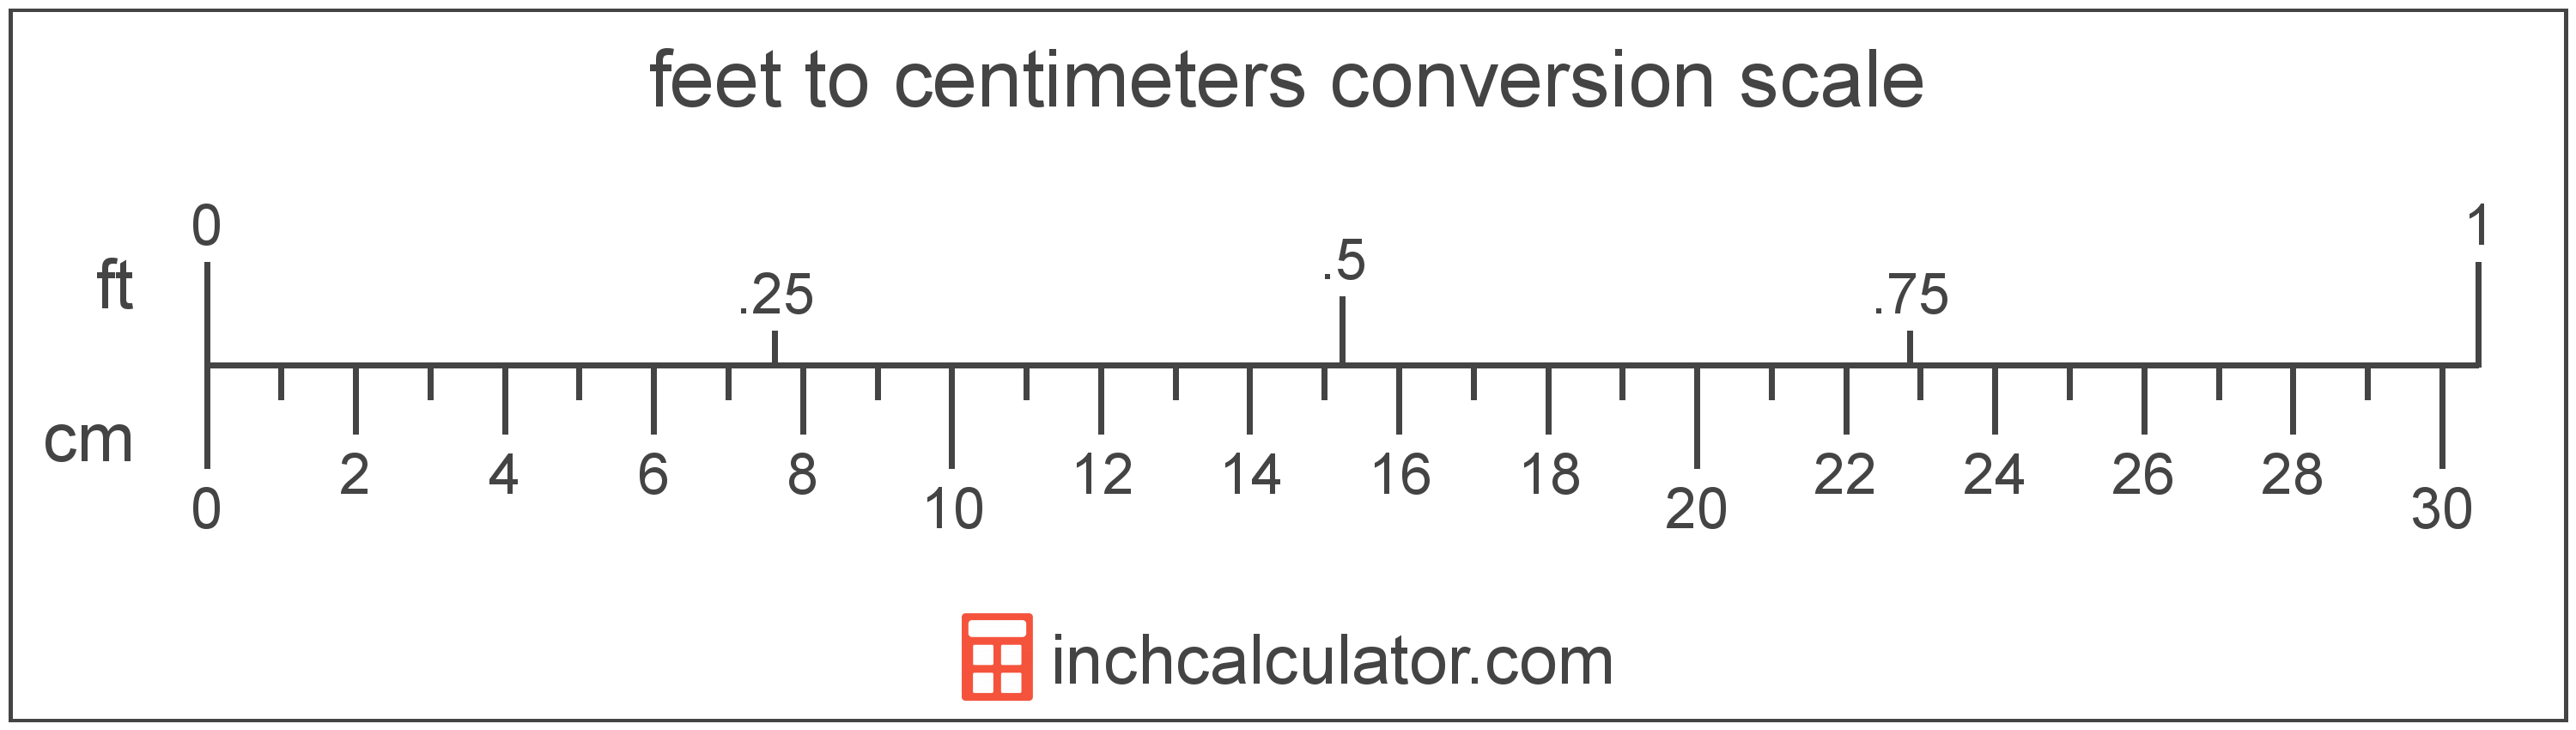 Centimeters To Feet Conversion Cm To Ft